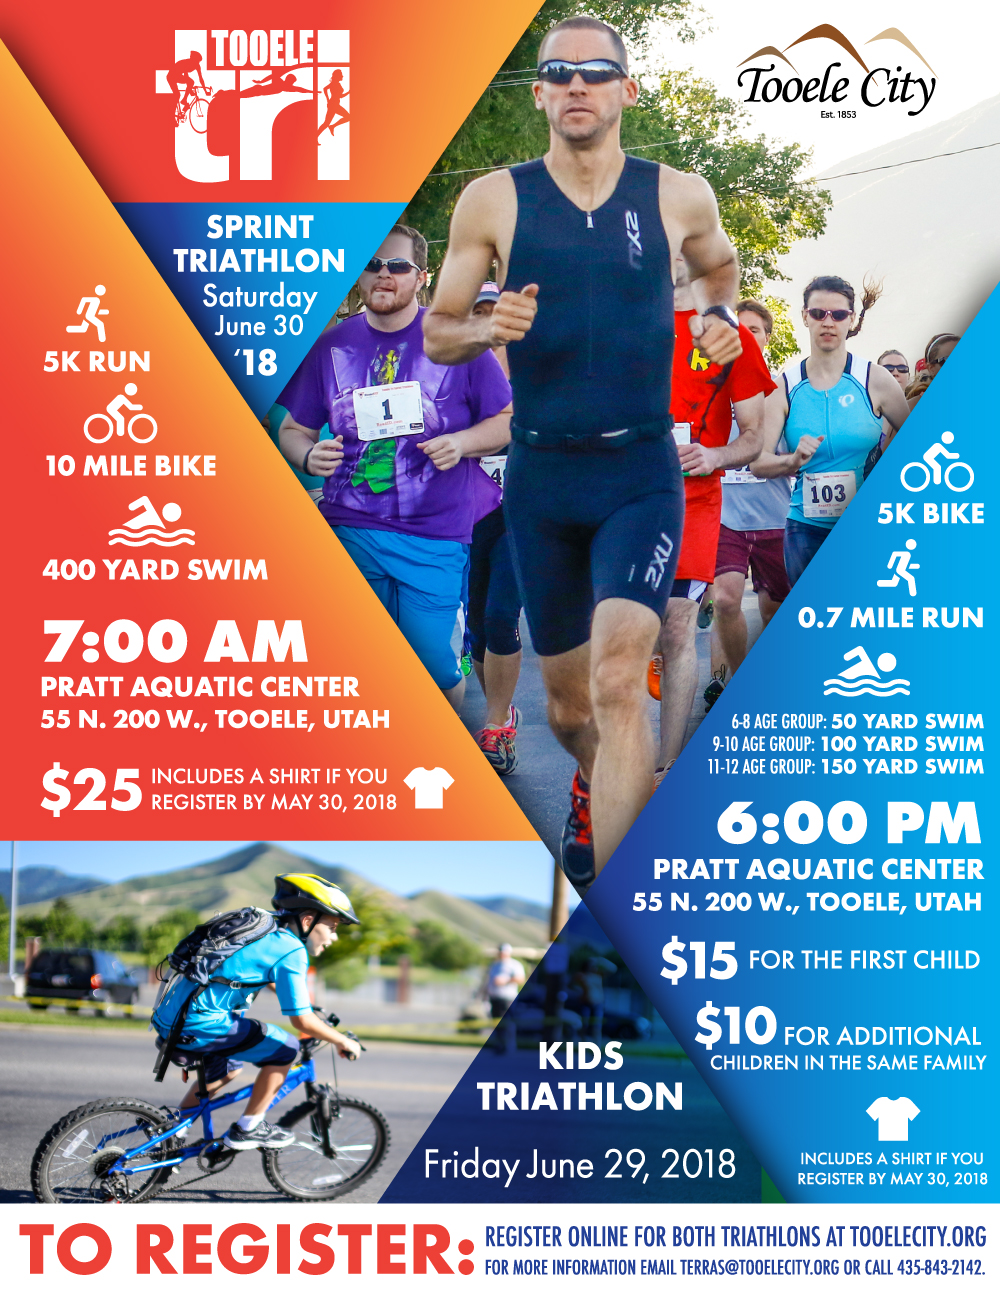 Tooele Tri: Kids and Sprint Triathlons